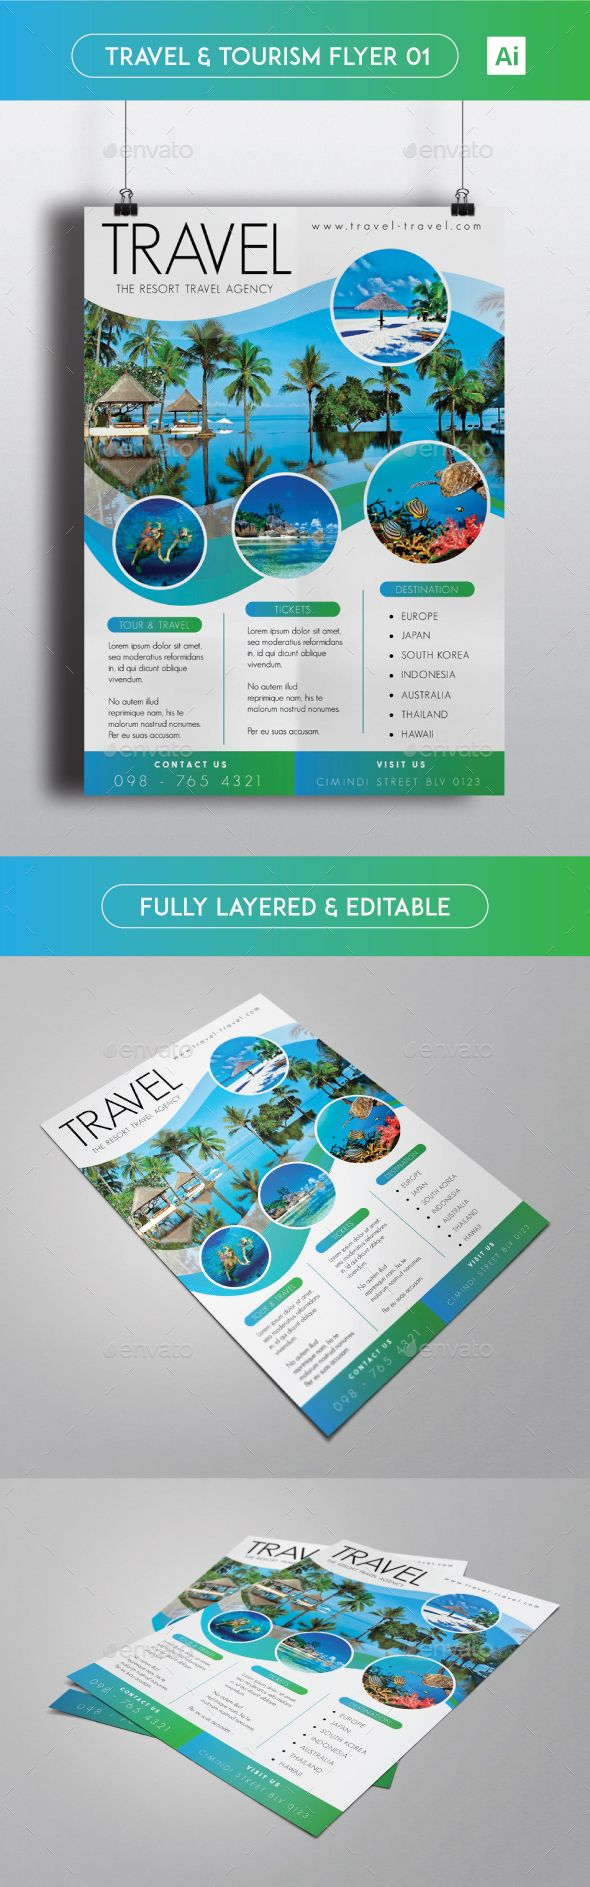 travel tourism flyer template ai illustrator